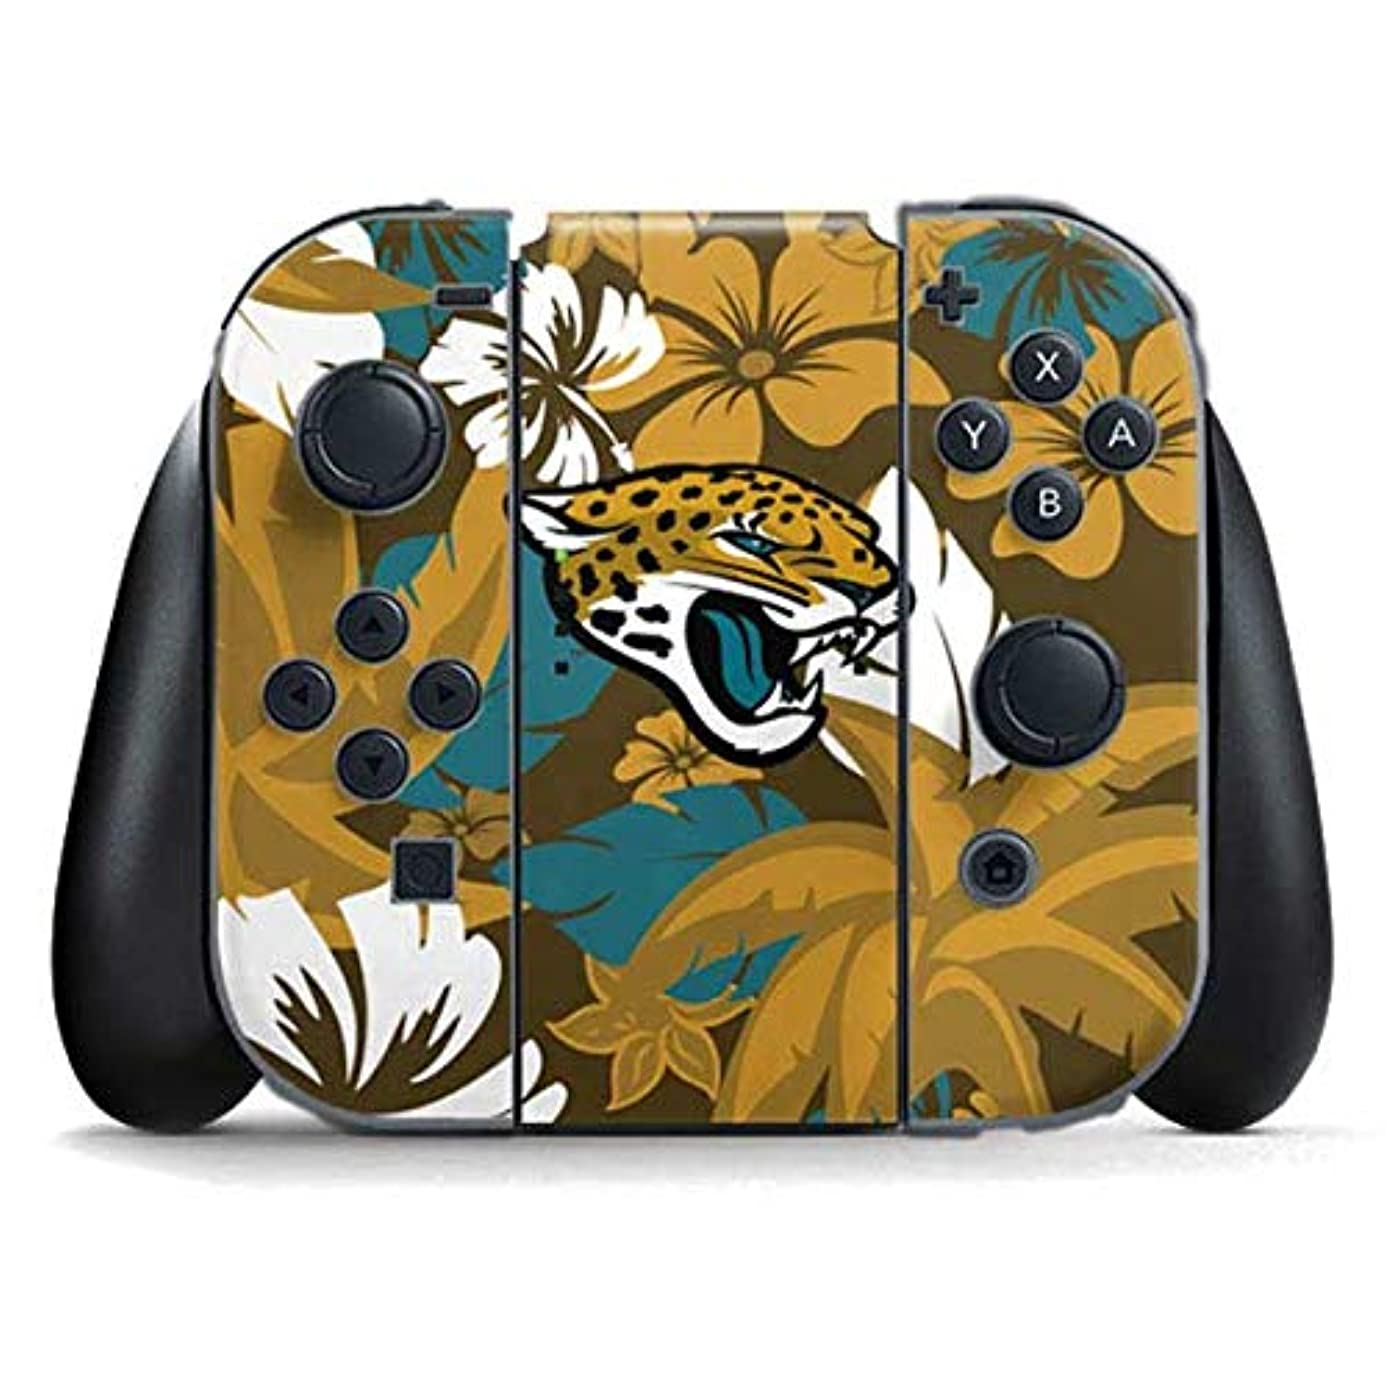 Skinit Jacksonville Jaguars Tropical Print Nintendo Switch Joy Con Controller Skin - Officially Licensed NFL Gaming Decal - Ultra Thin, Lightweight Vinyl Decal Protection